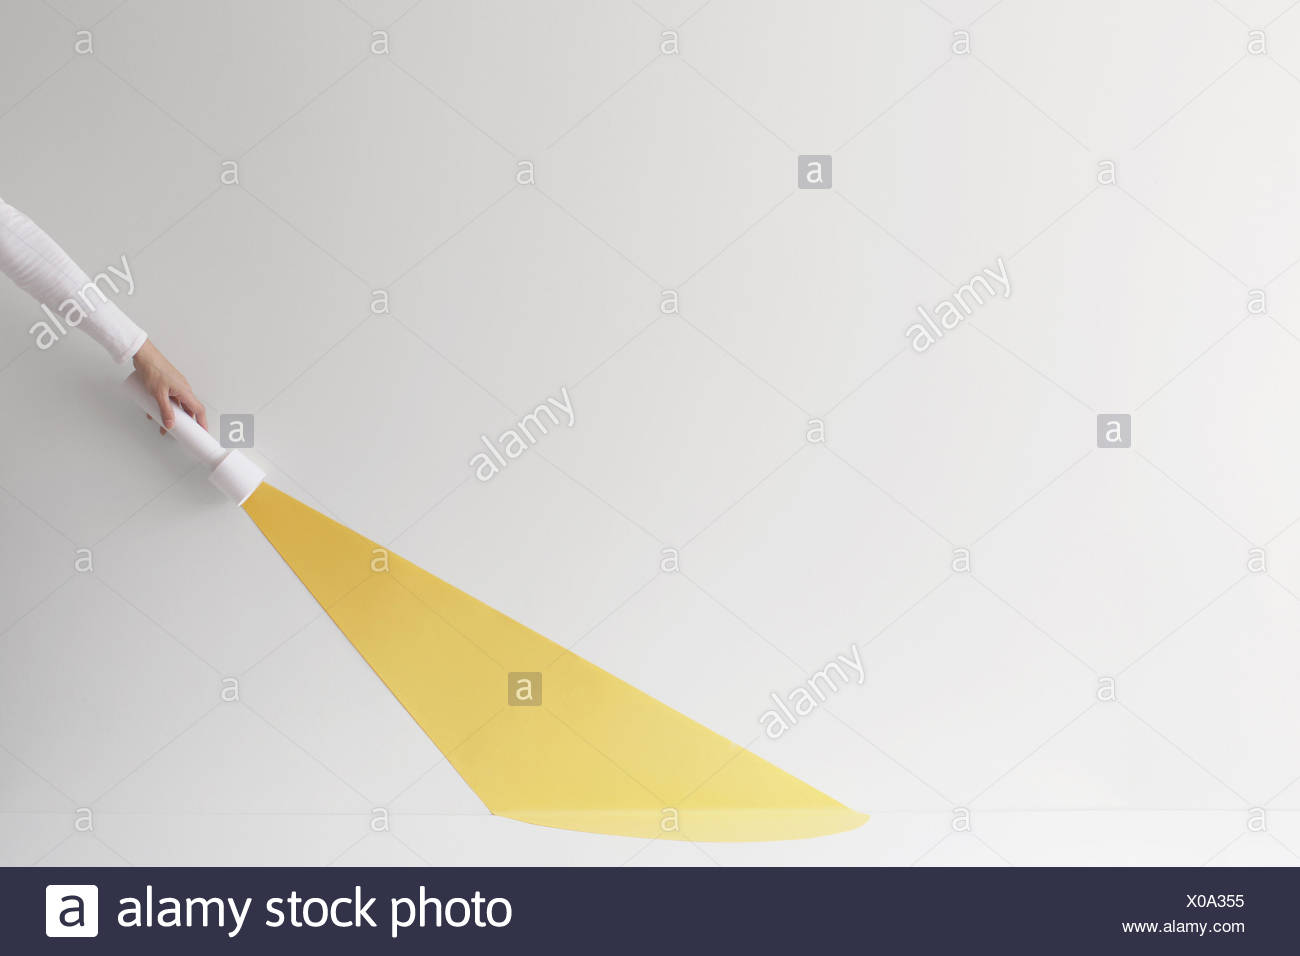 Conceptual hand holding a torch with light beam - Stock Image